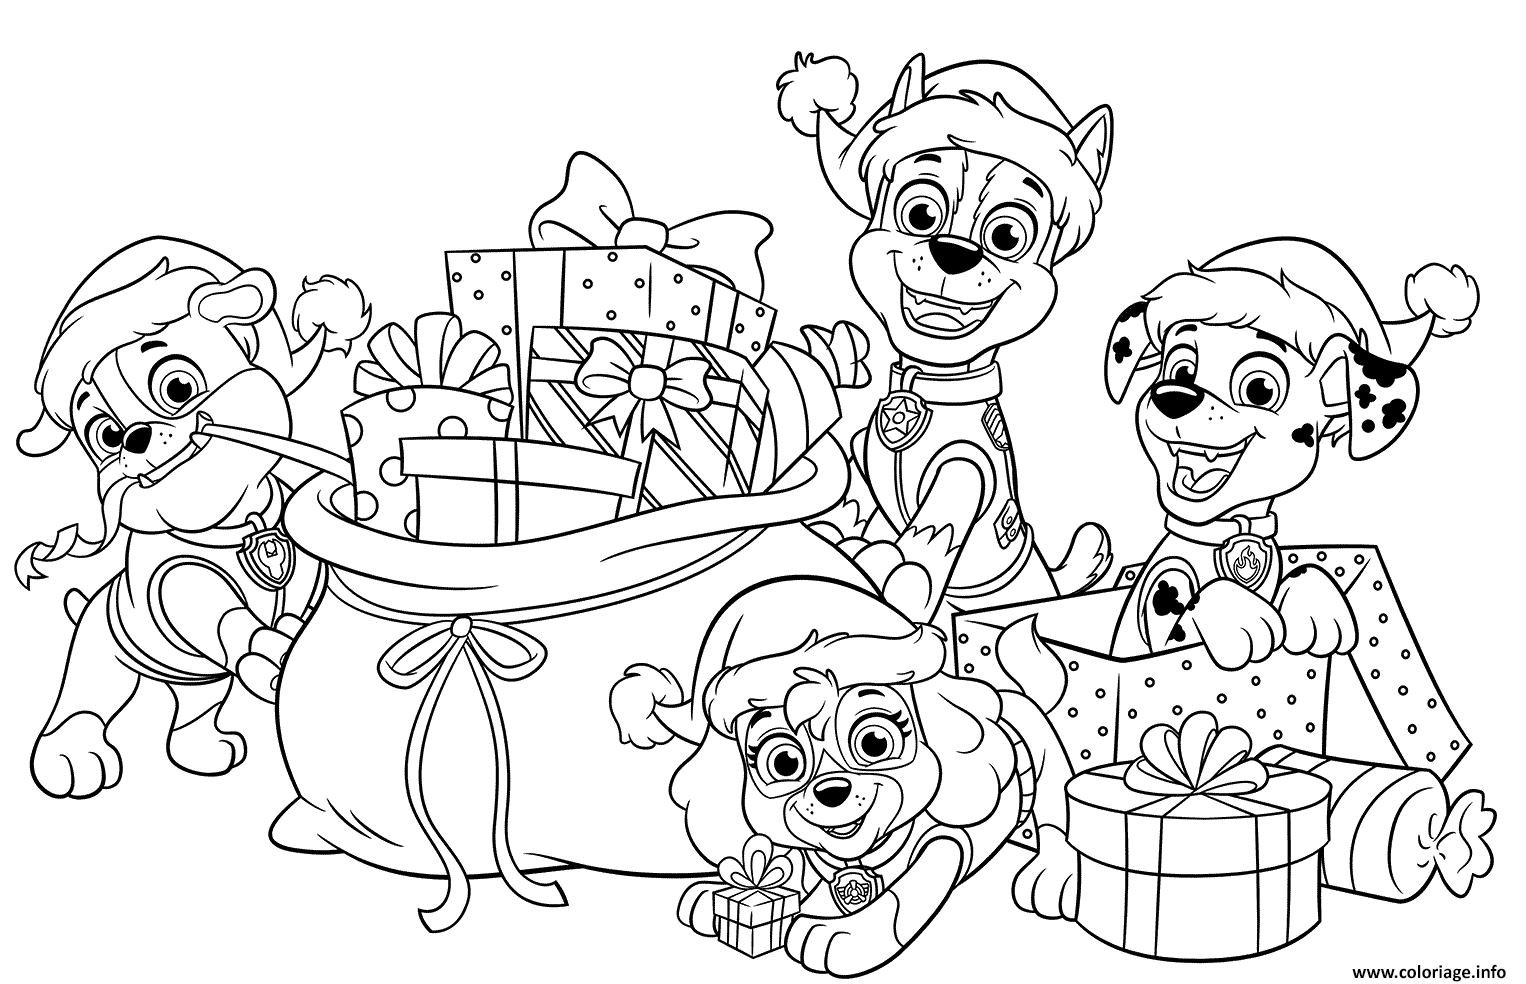 Coloriage Pat Patrouille Christmas Gifts Dessin Pat ...